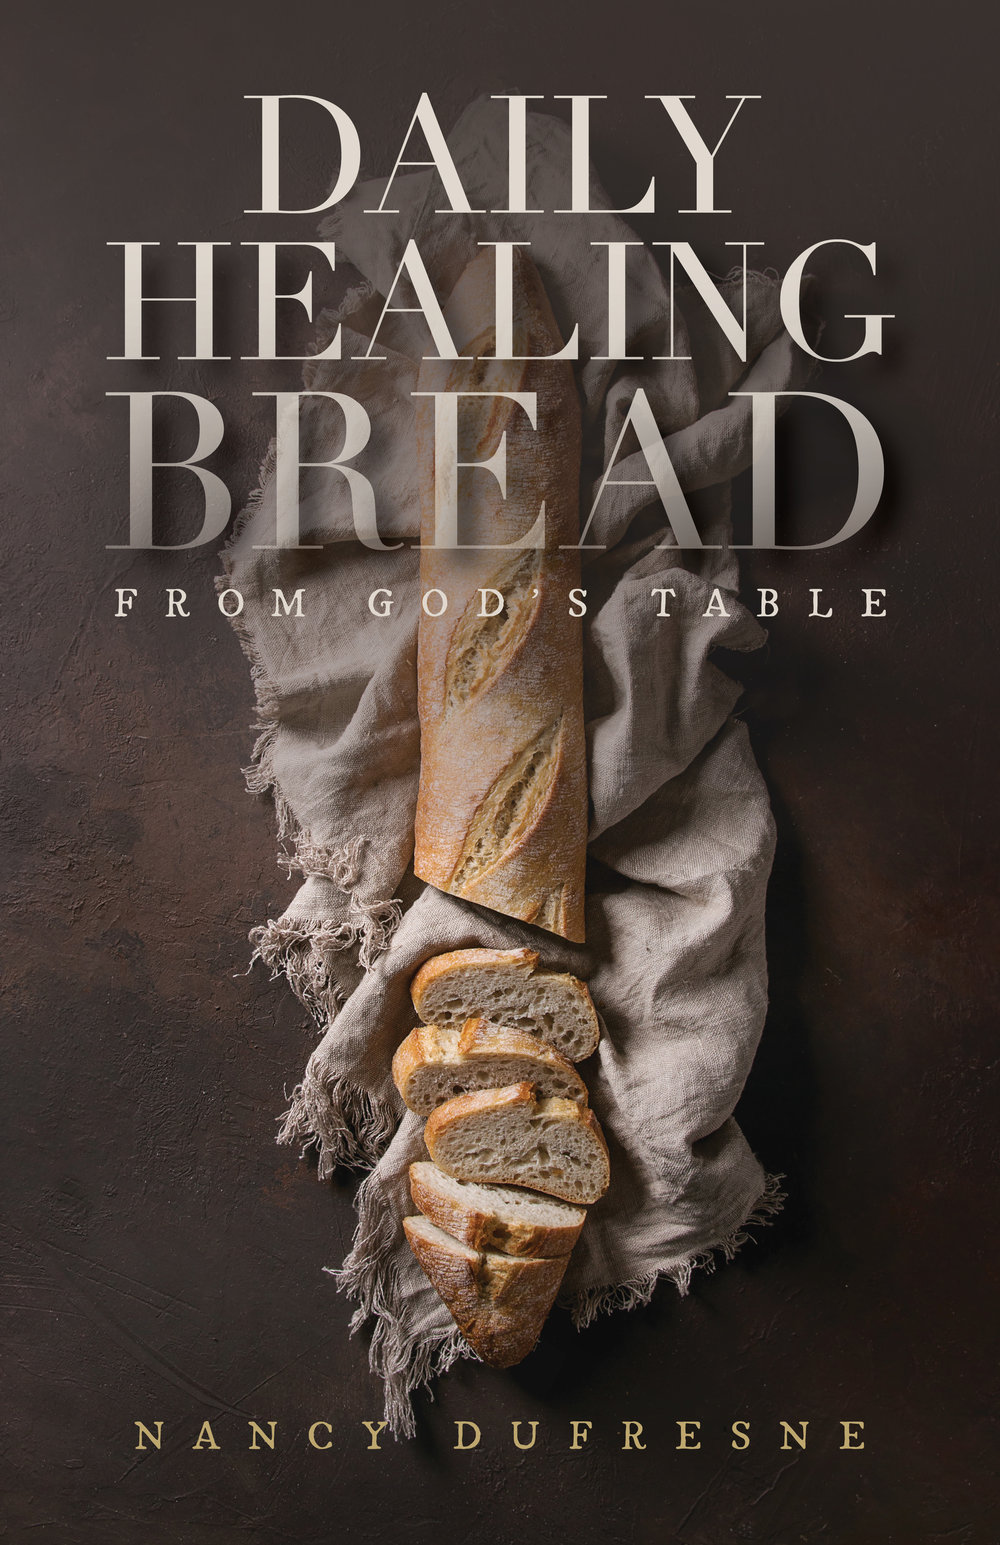 DAILY HEALING BREAD FINAL 5:1:18.jpg